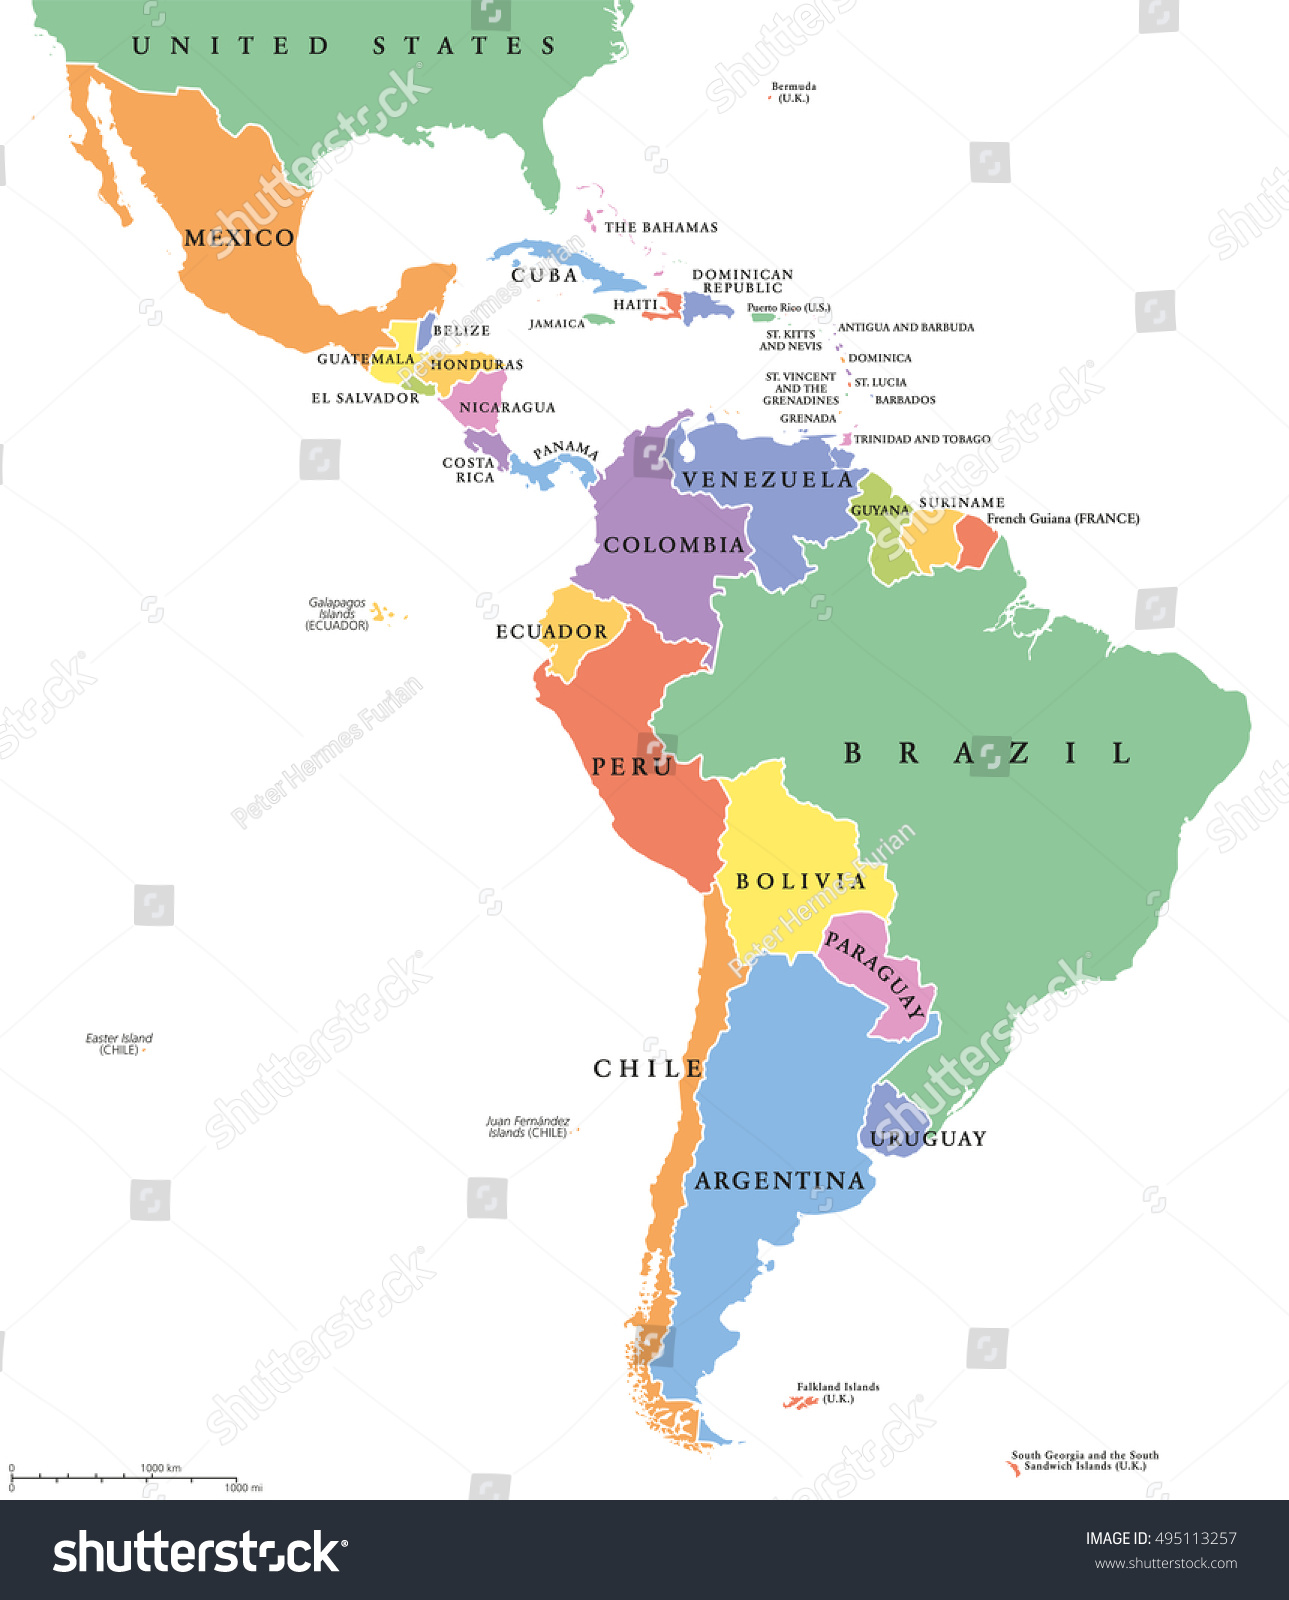 latin america single states political map stock vector